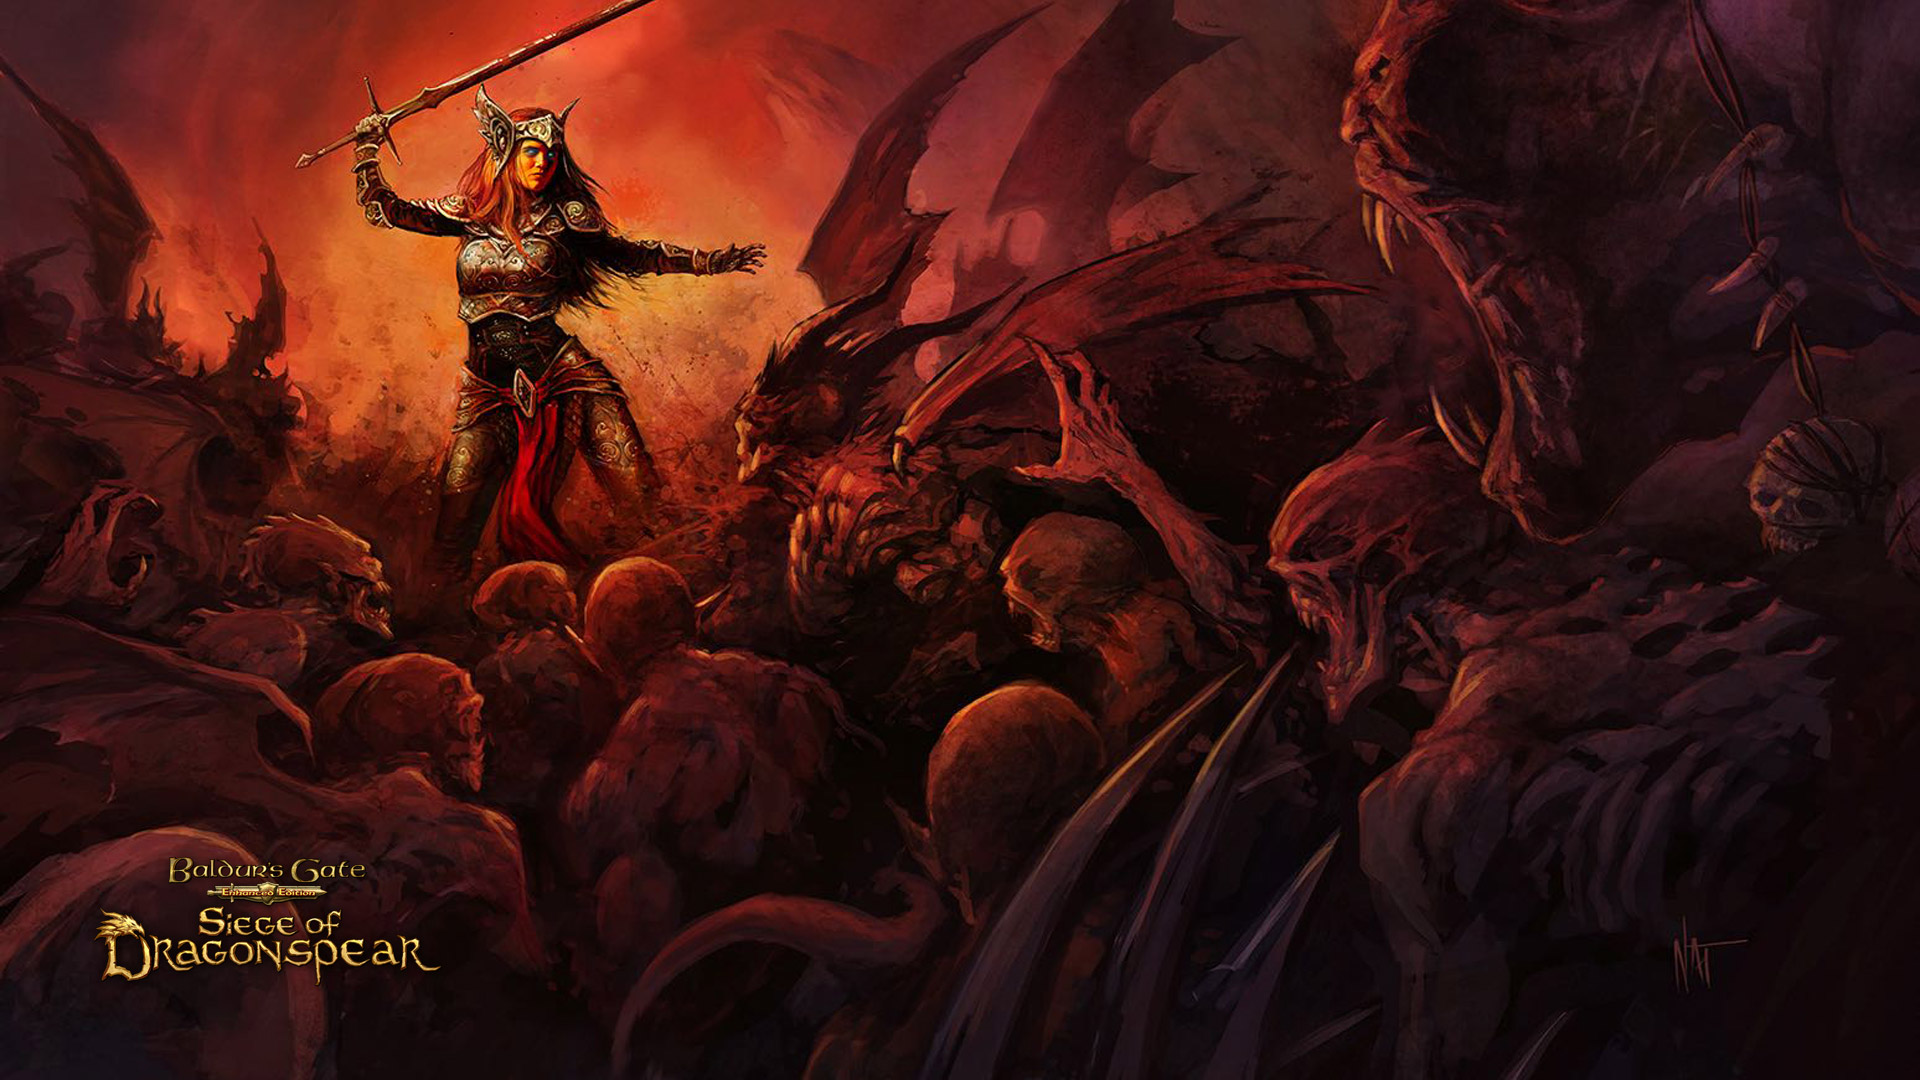 Baldurs Gate Wallpapers Pictures Images